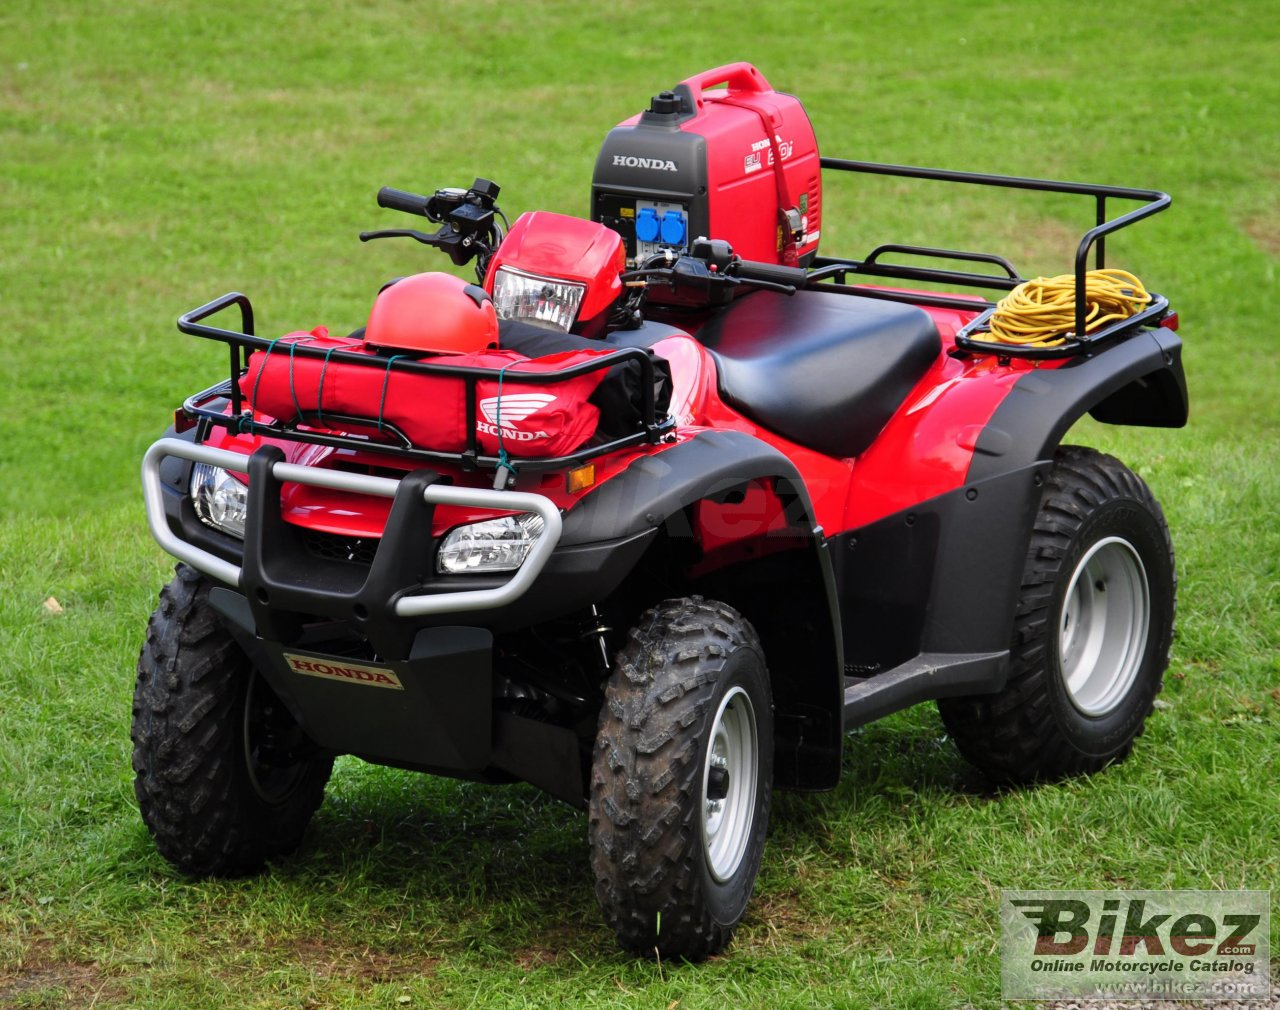 Big Honda trx500fm picture and wallpaper from Bikez.com